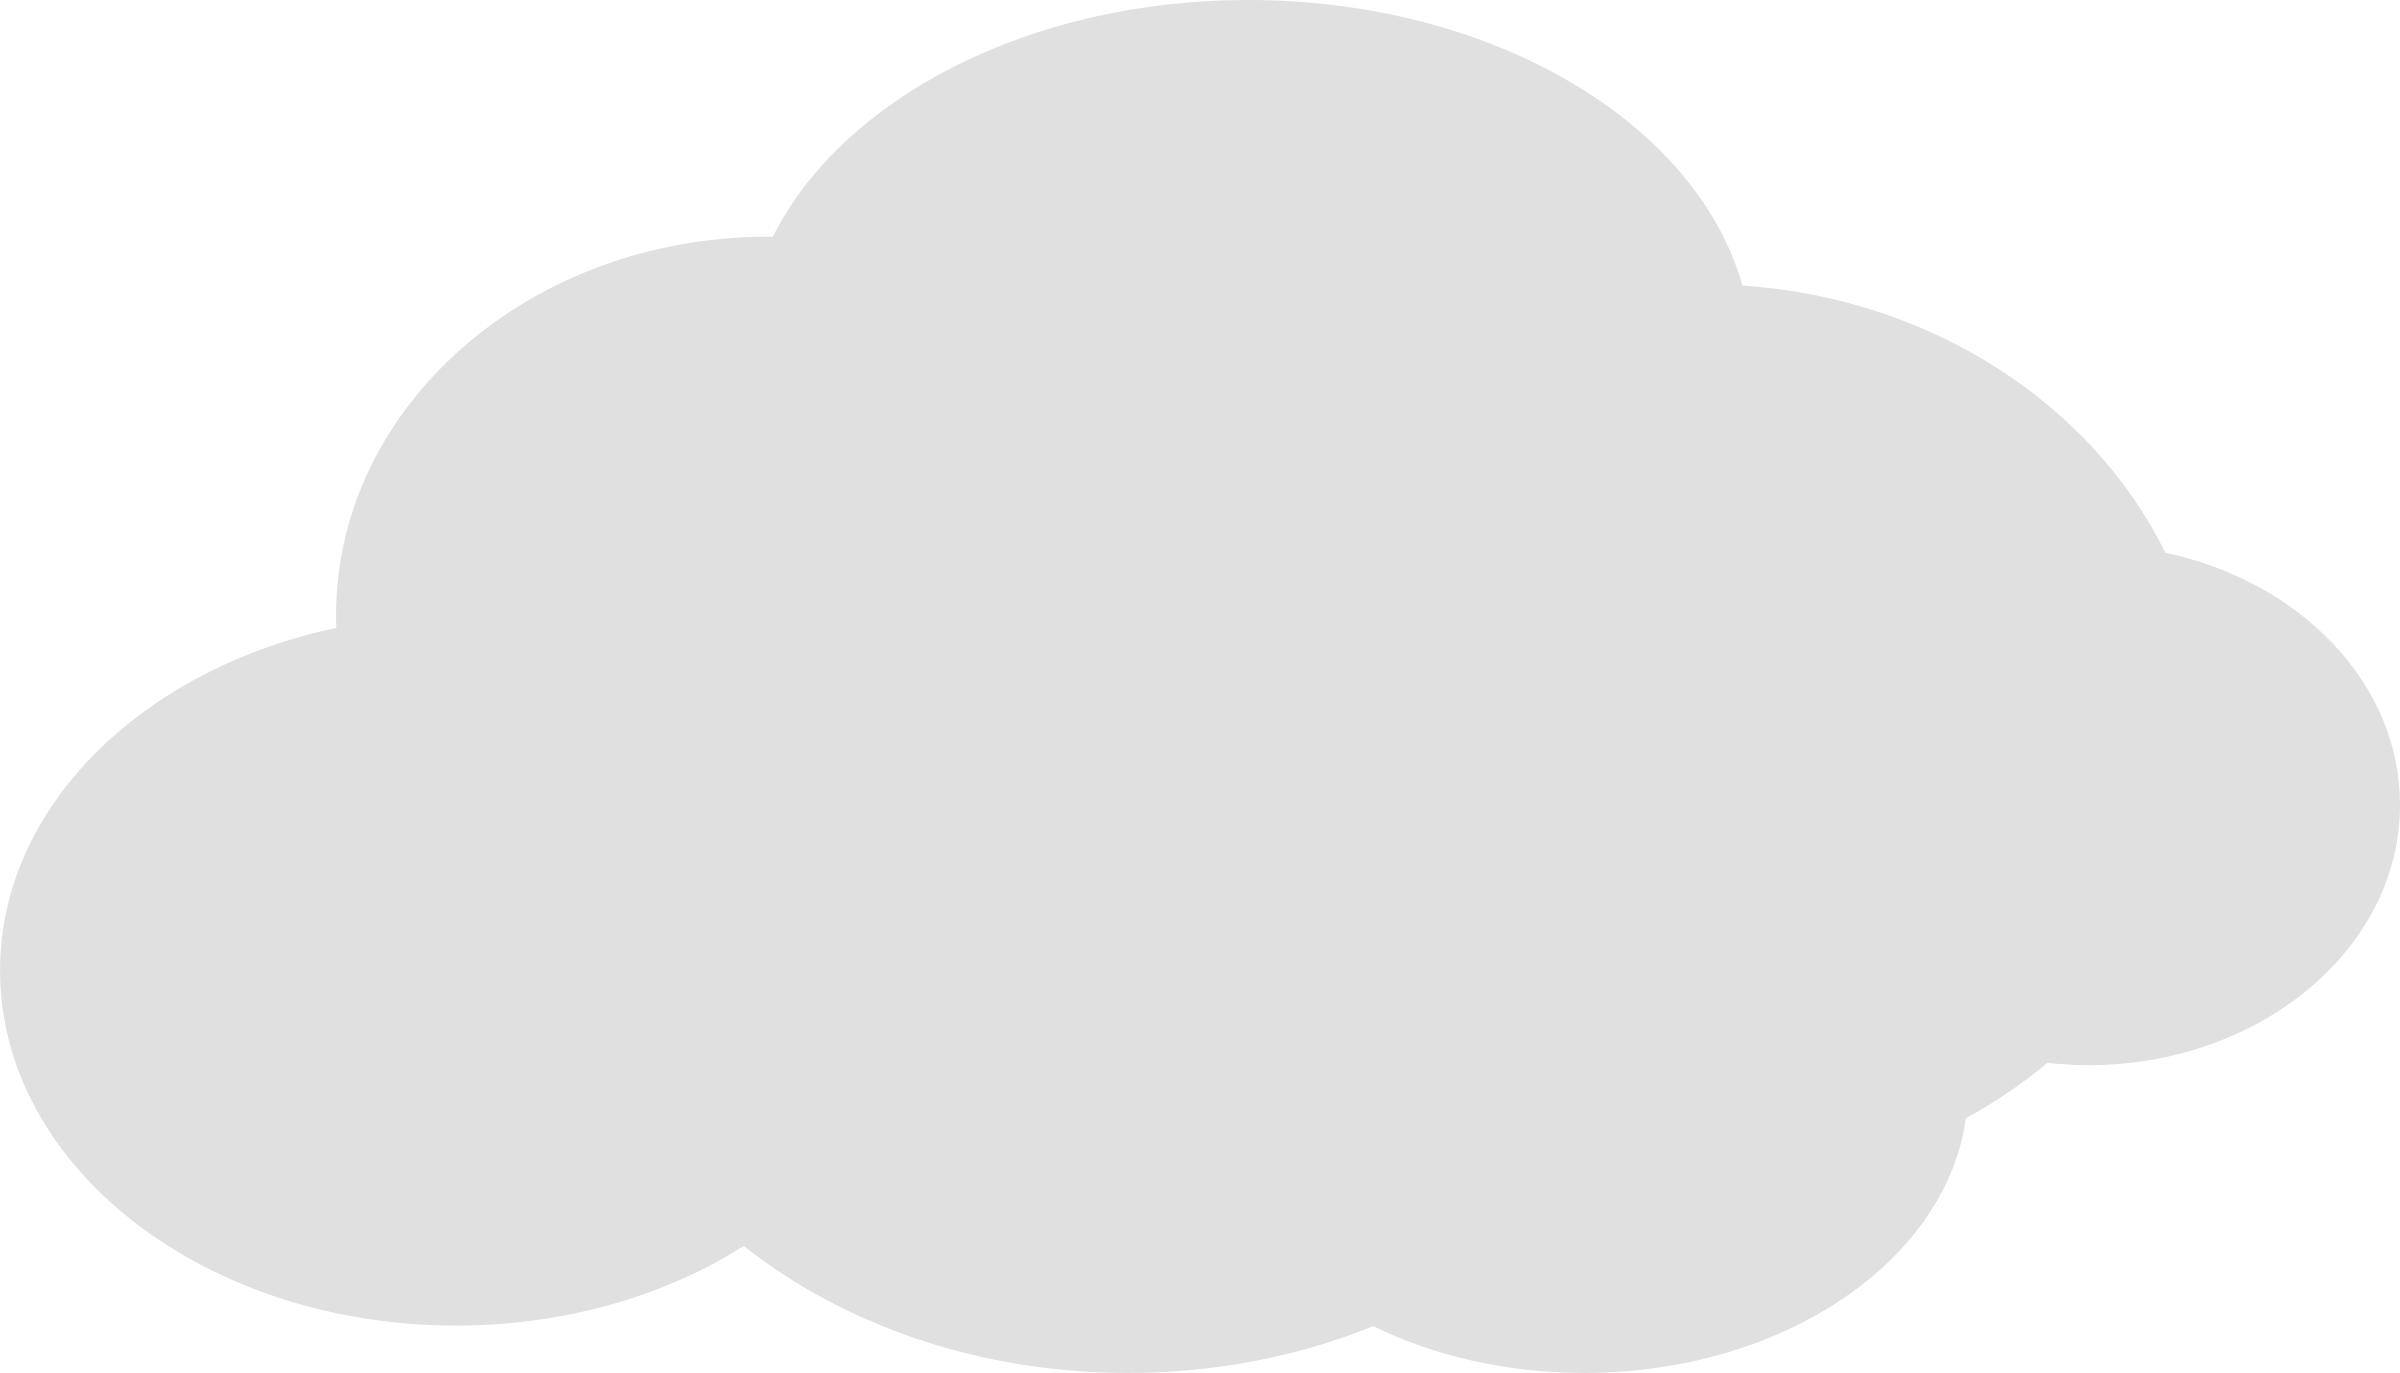 Cloud png clipart. Free icon transparent download